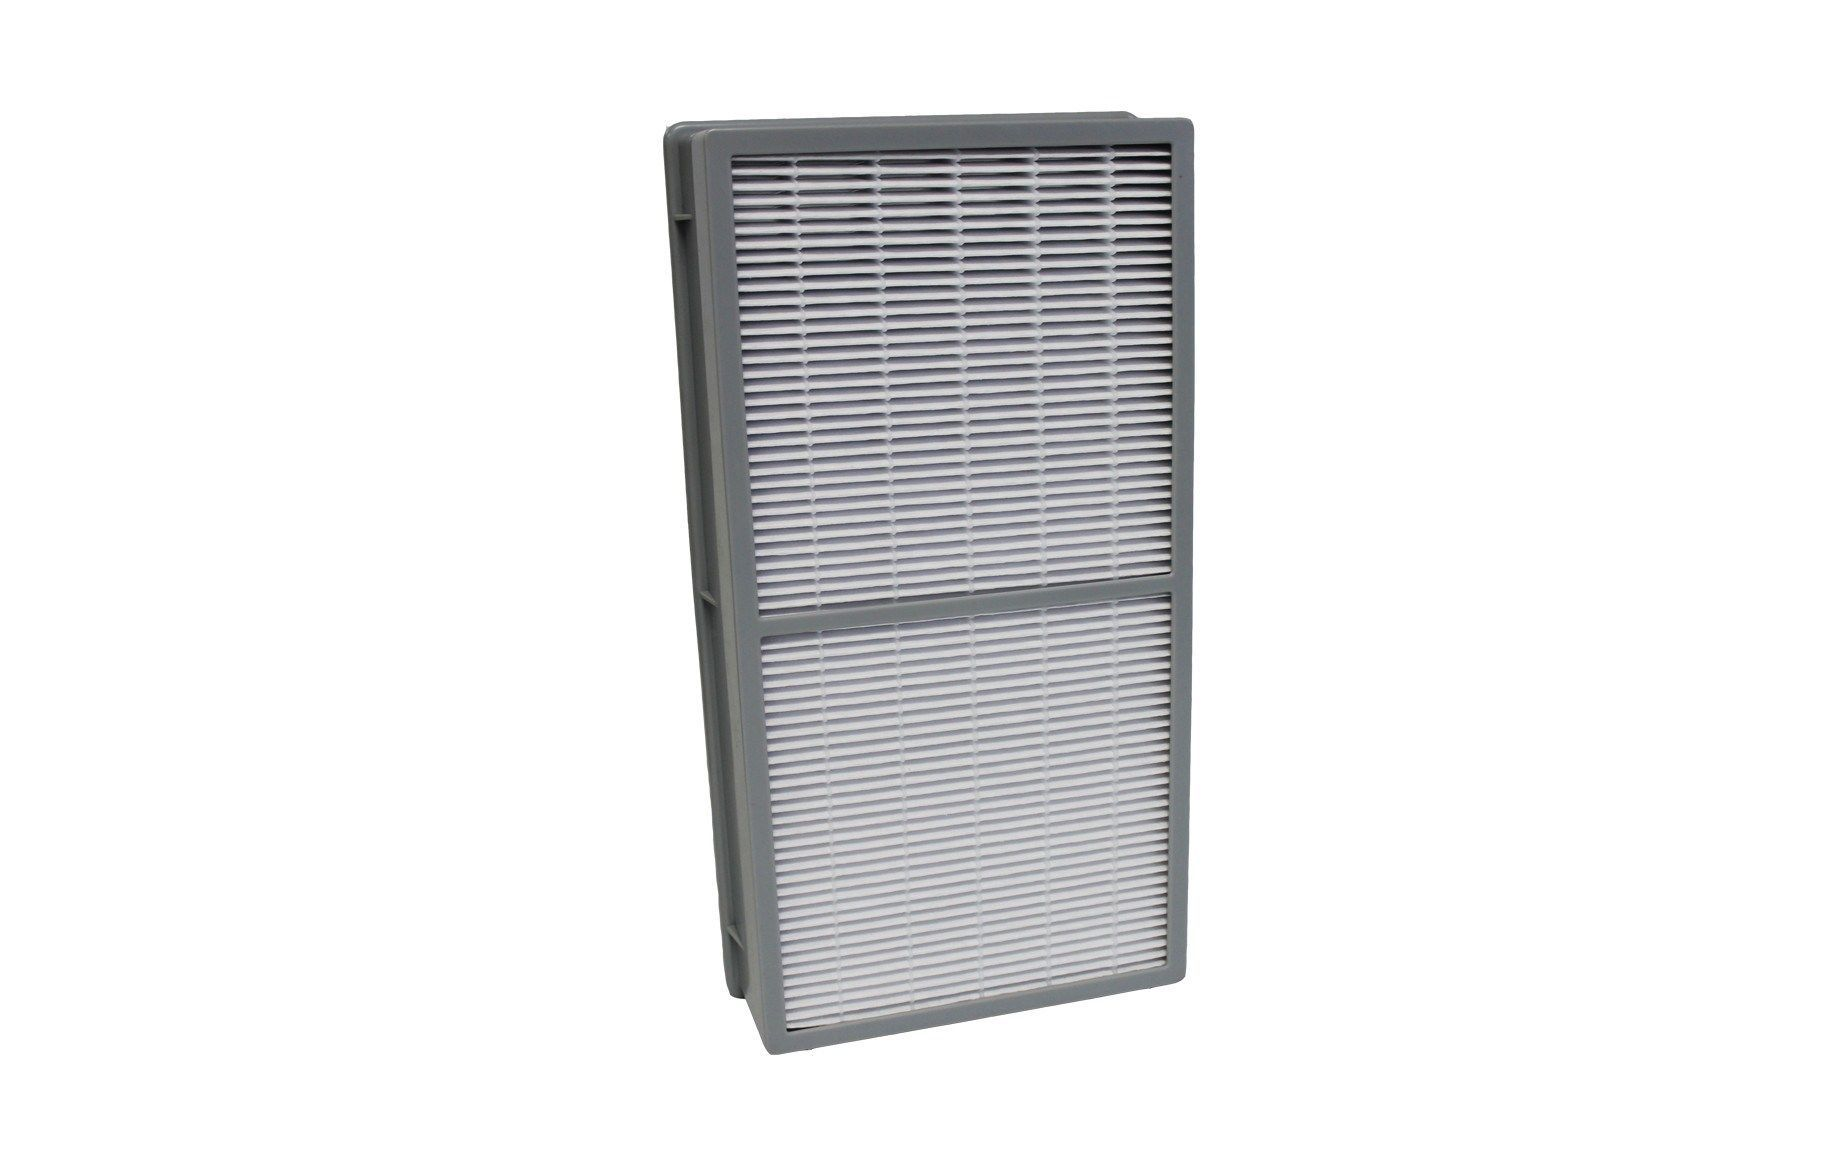 Hunter 30962 Air Purifier Filter Fits 30730, 30713 & 30730